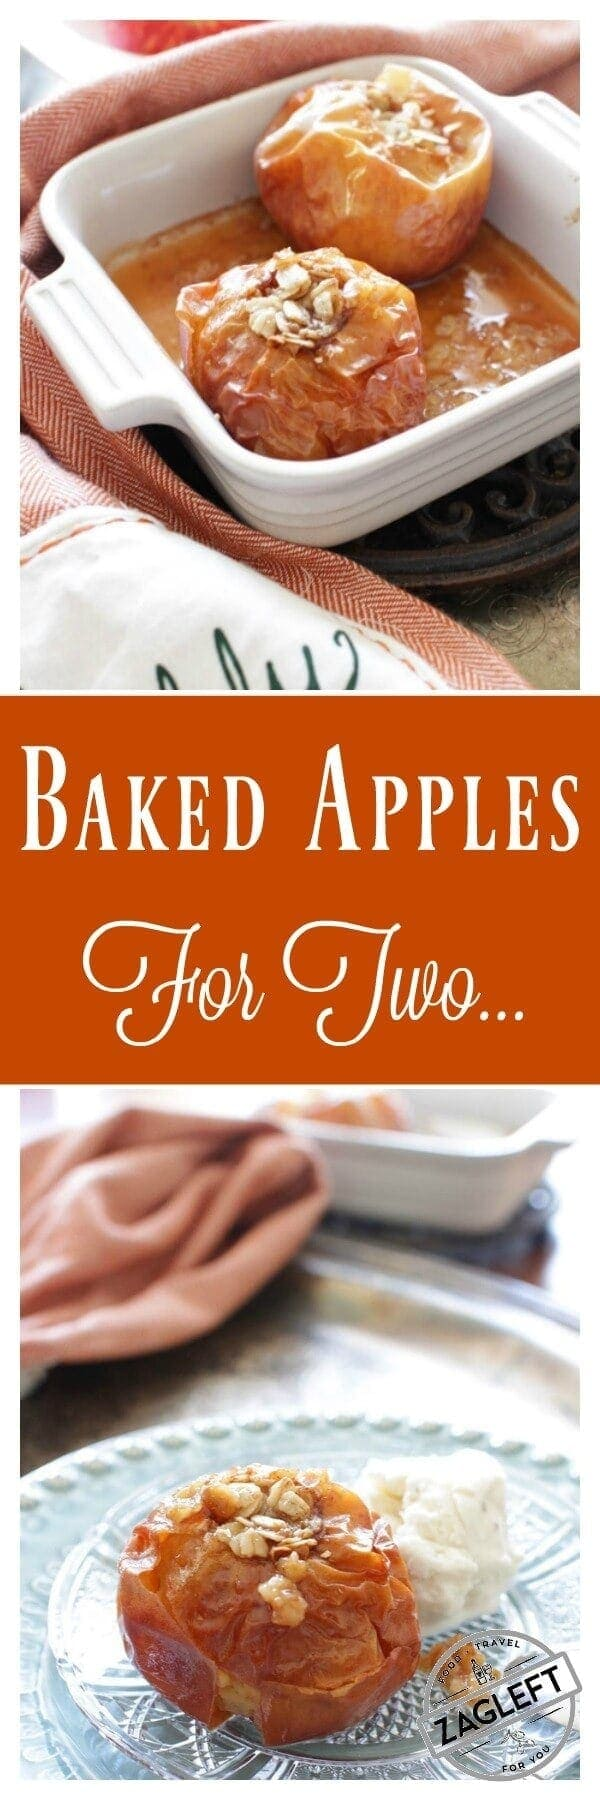 Baked Apples For Two | www.onedishkitchen.com